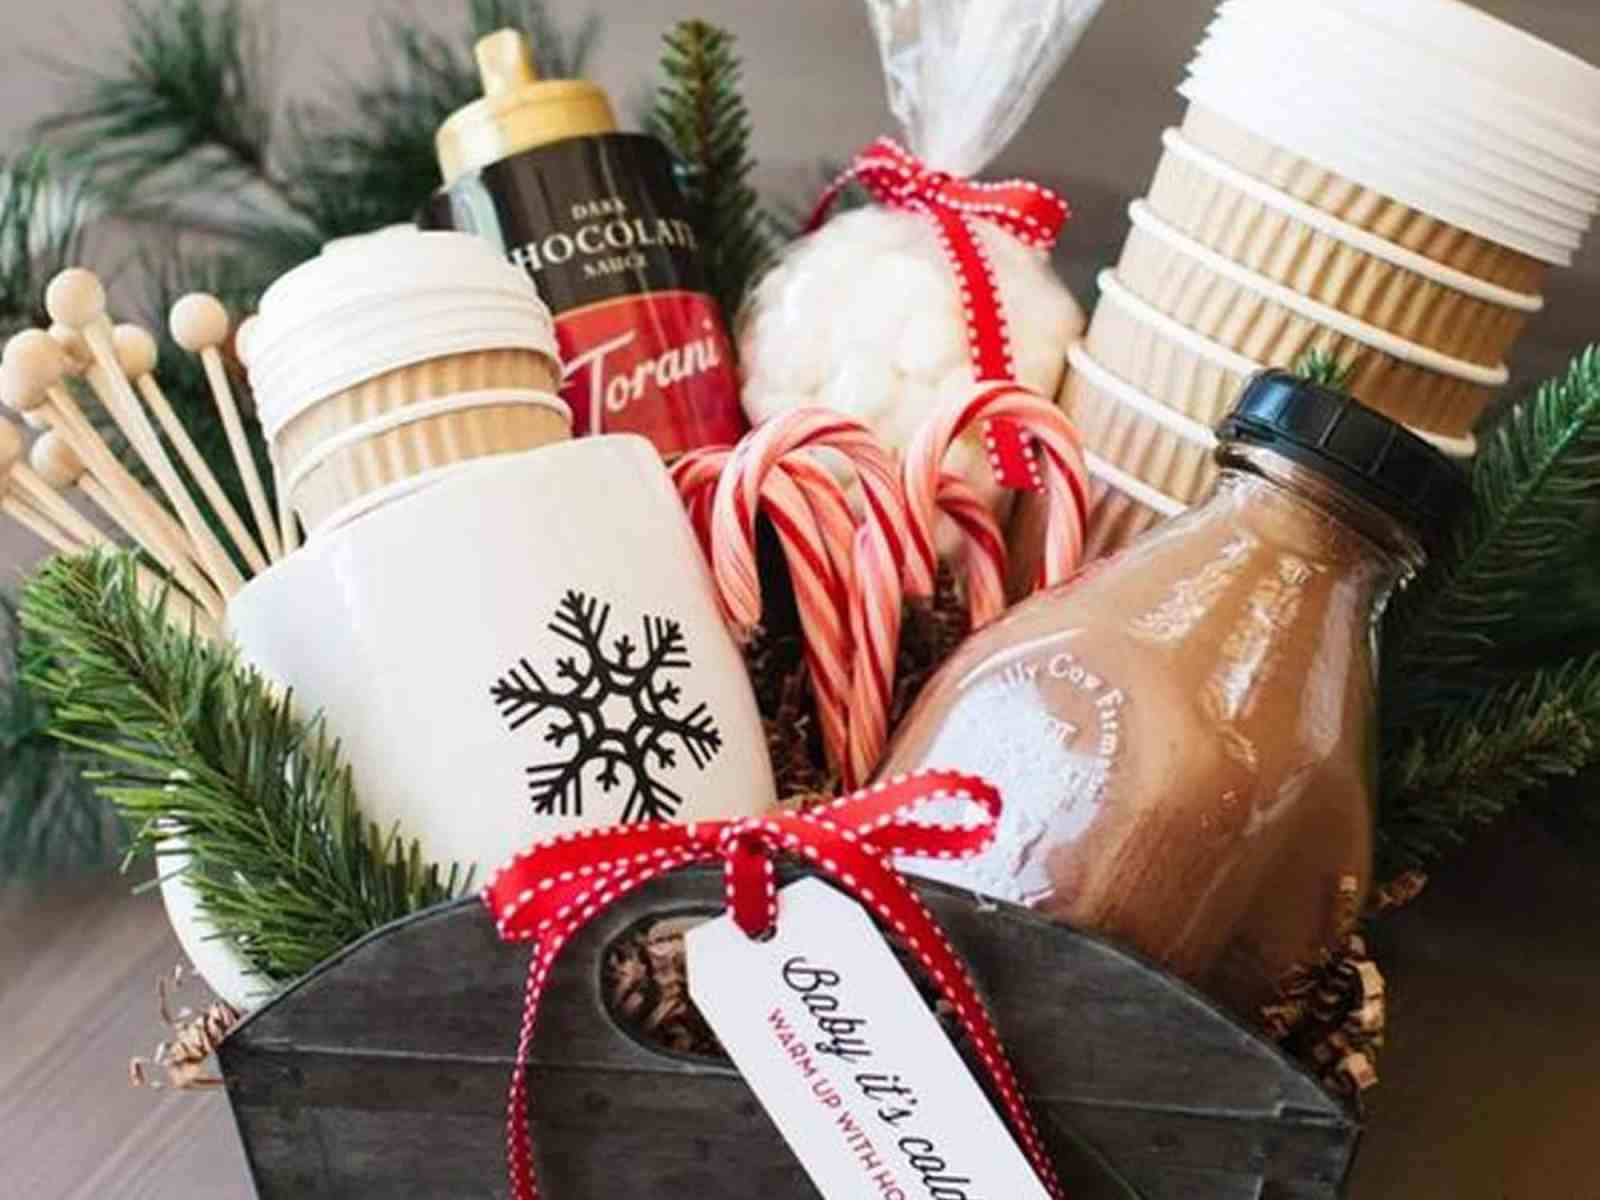 If you're looking for some white elephant gift ideas this Christmas, then these present ideas are some of the most fun presents to give this Christmas!